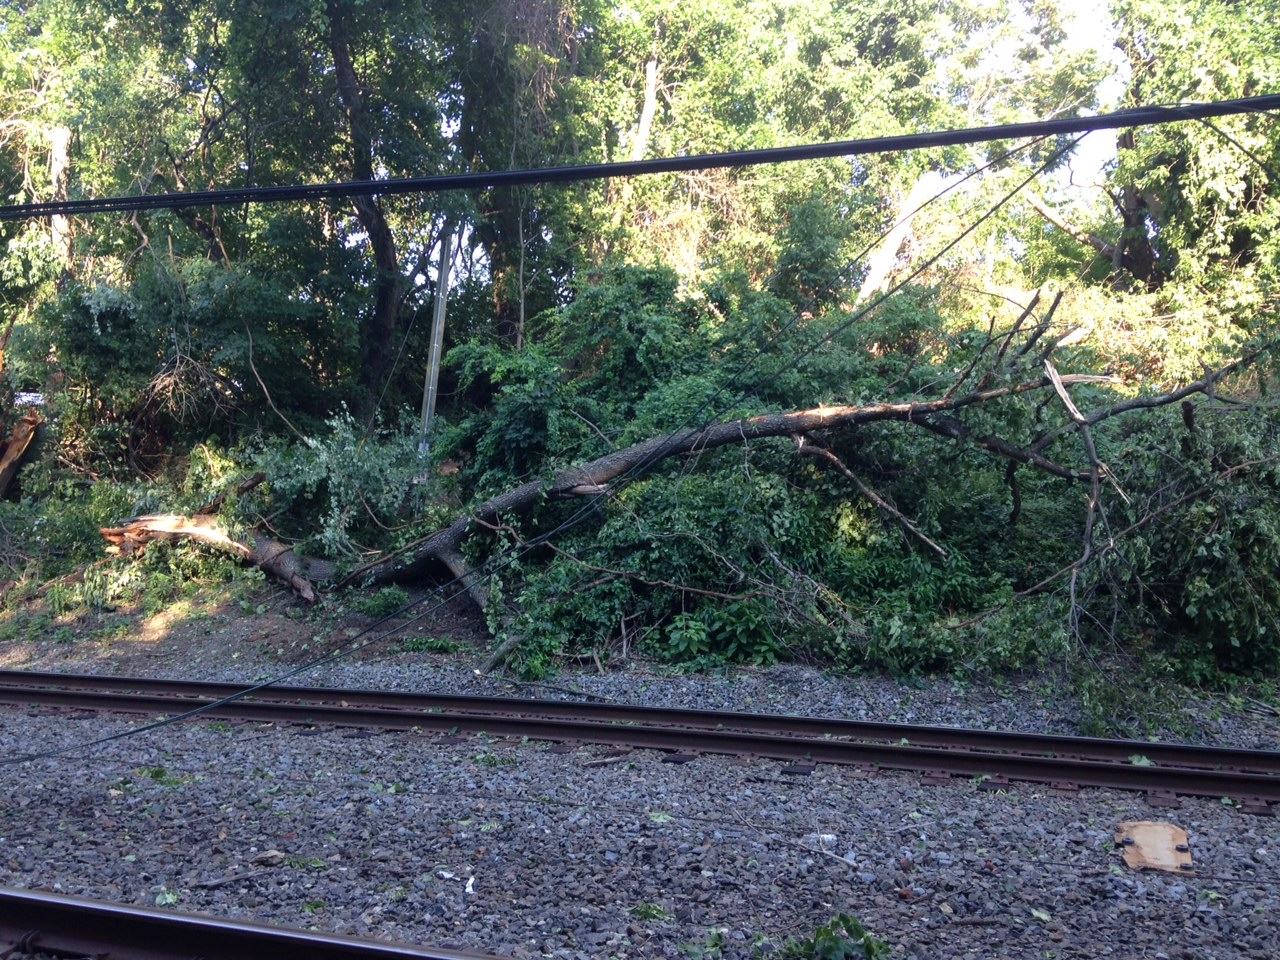 The power problem that caused the  suspension of service on the Fox Chase Regional Rail Line was the result of a tree, located in the CSX right of way, falling into the track area.